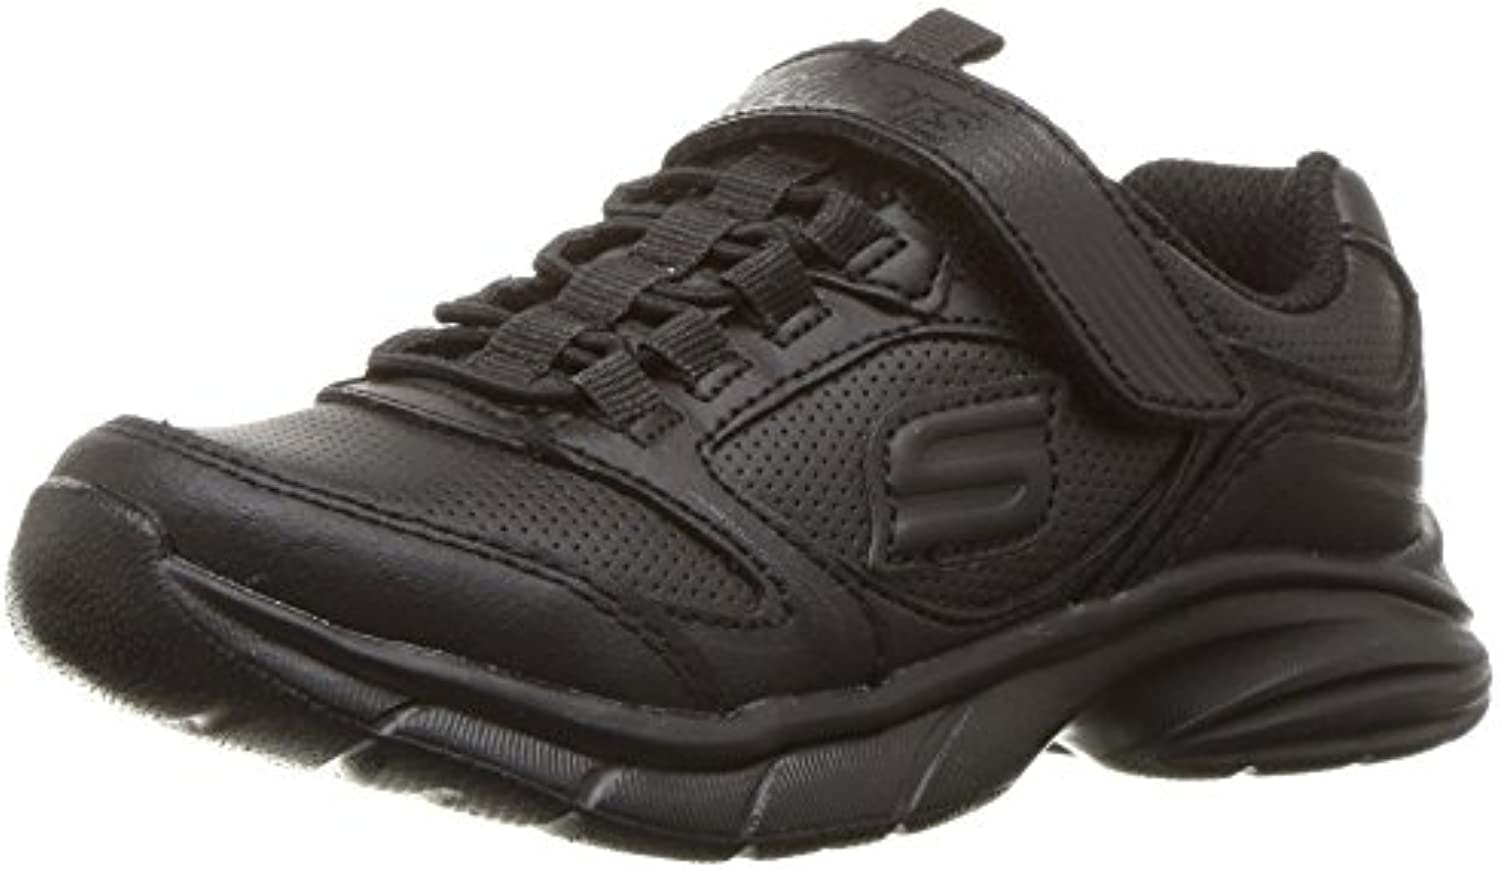 Skechers Girls' Kids Girls' Skechers Spirit Sprintz Sneaker, Black/Black, 4.5 M US Big Kid 04f644